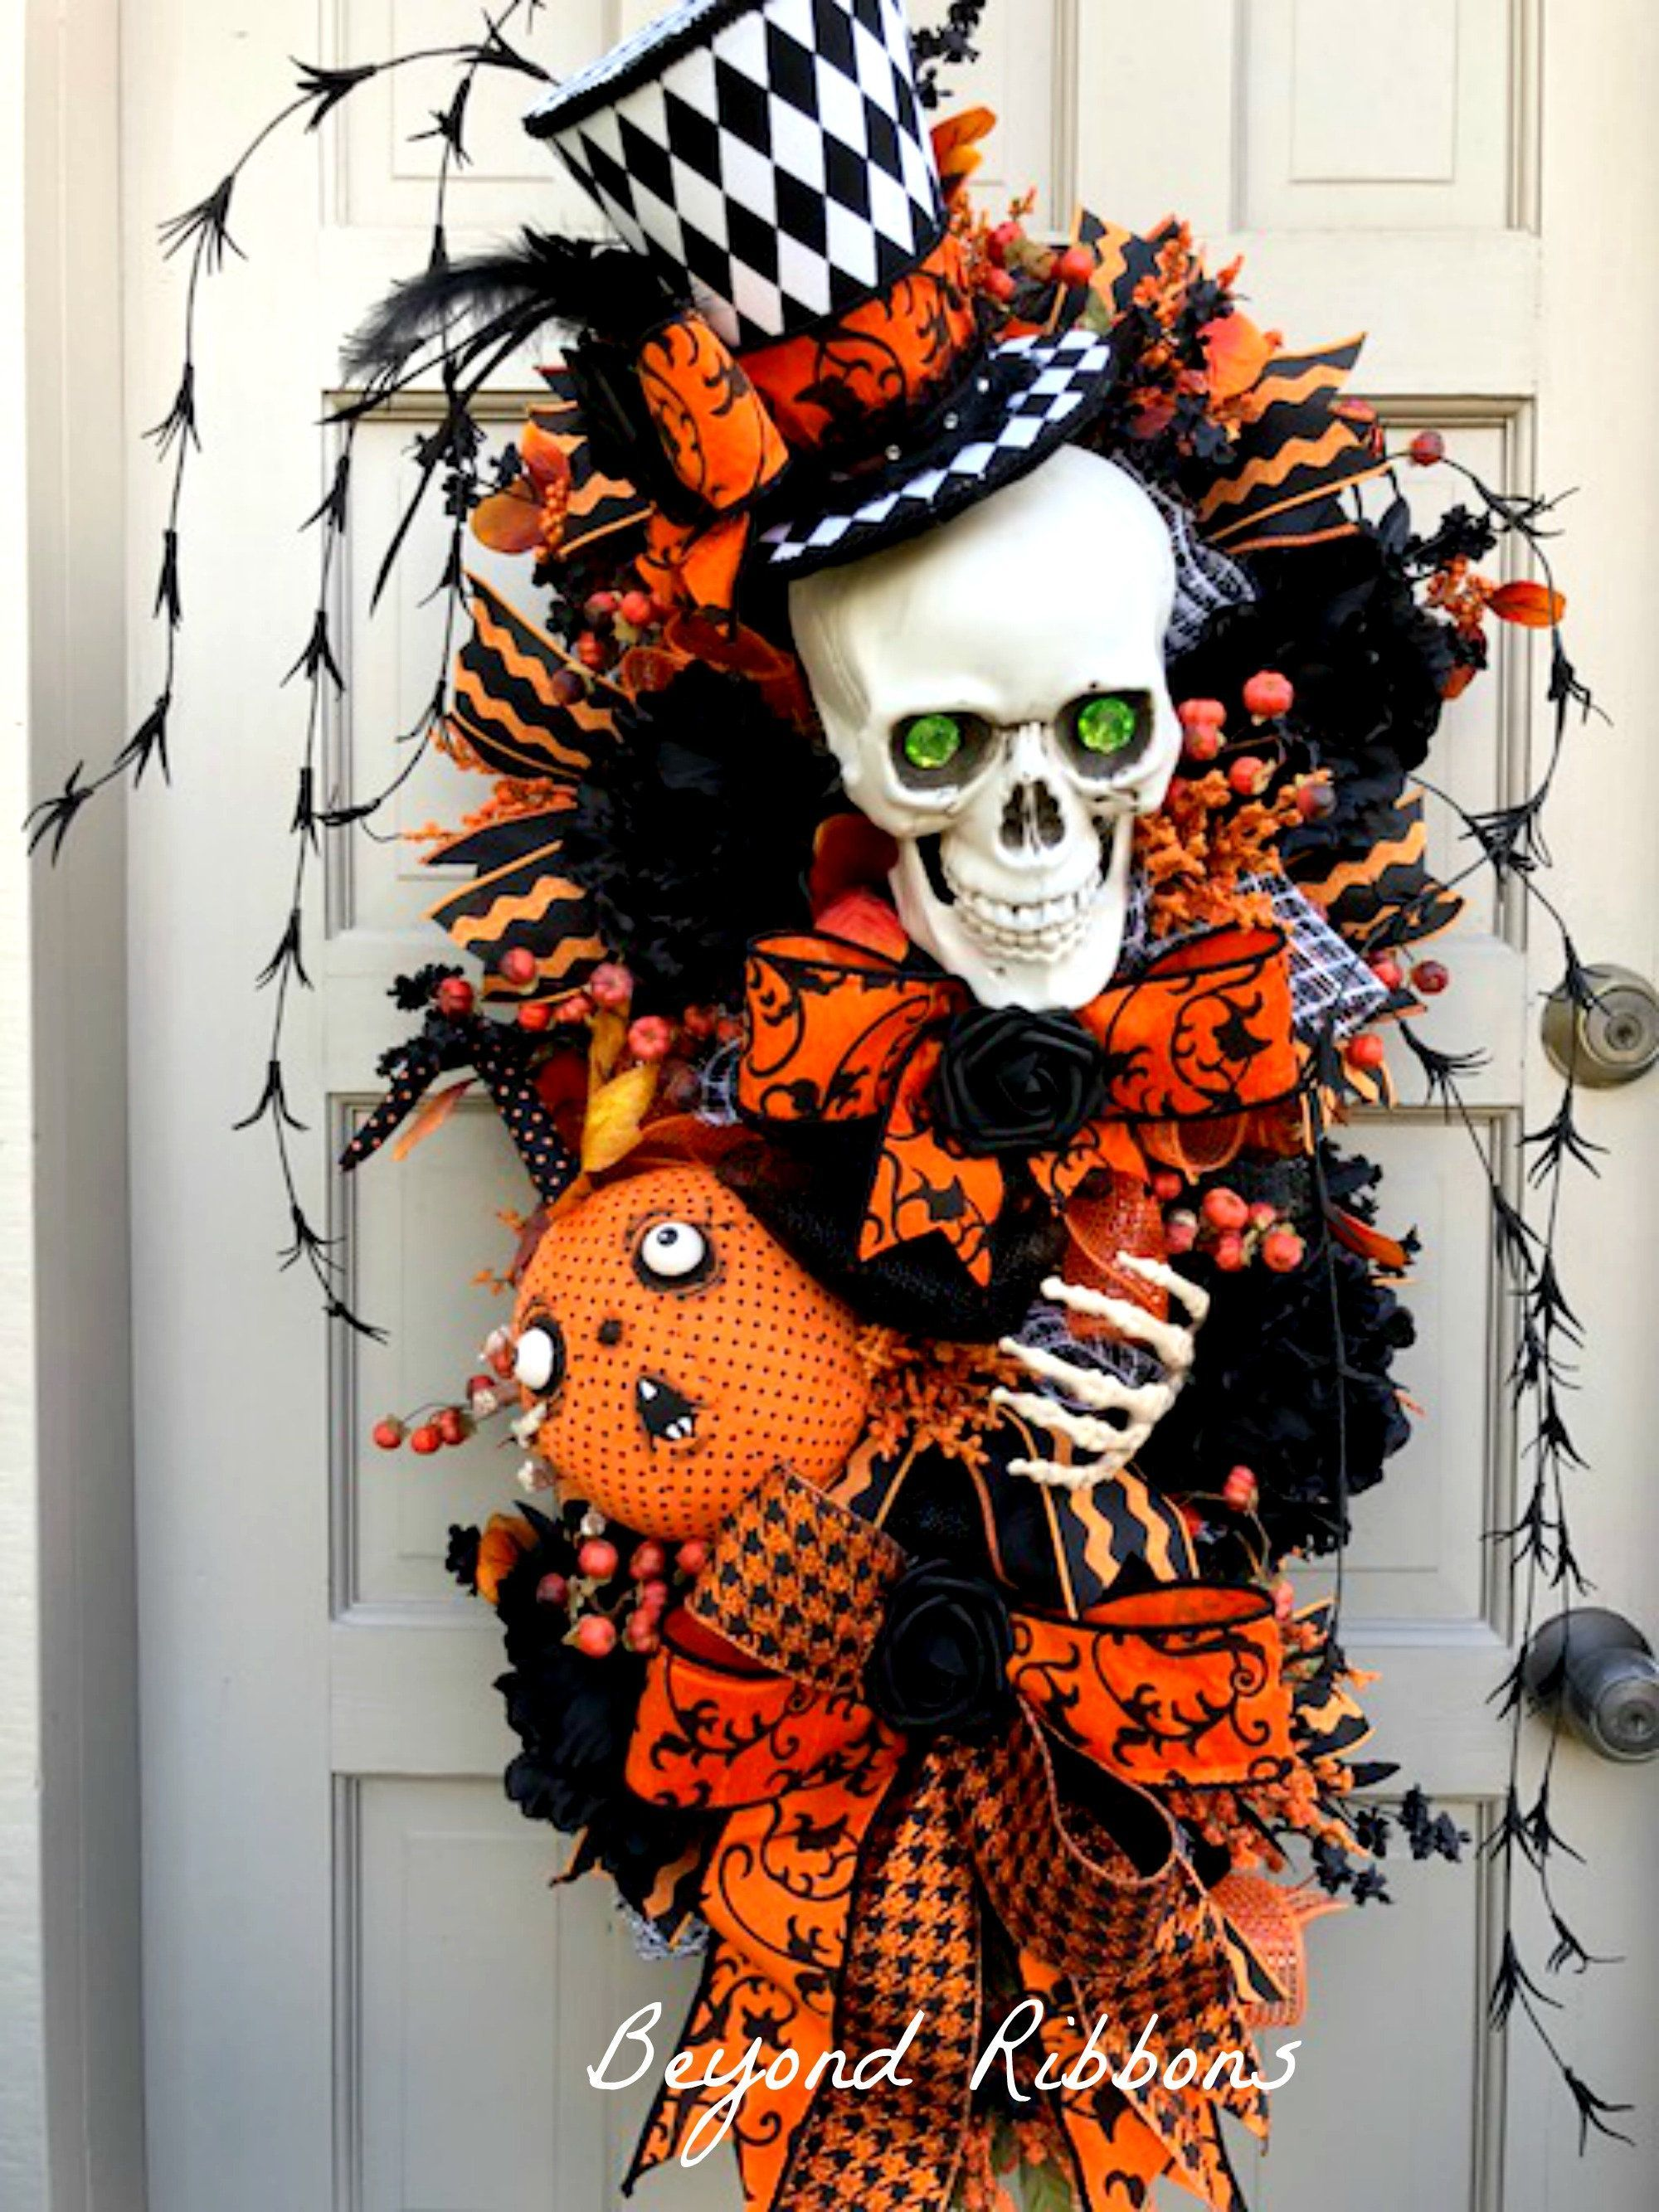 Pin on Halloween decor